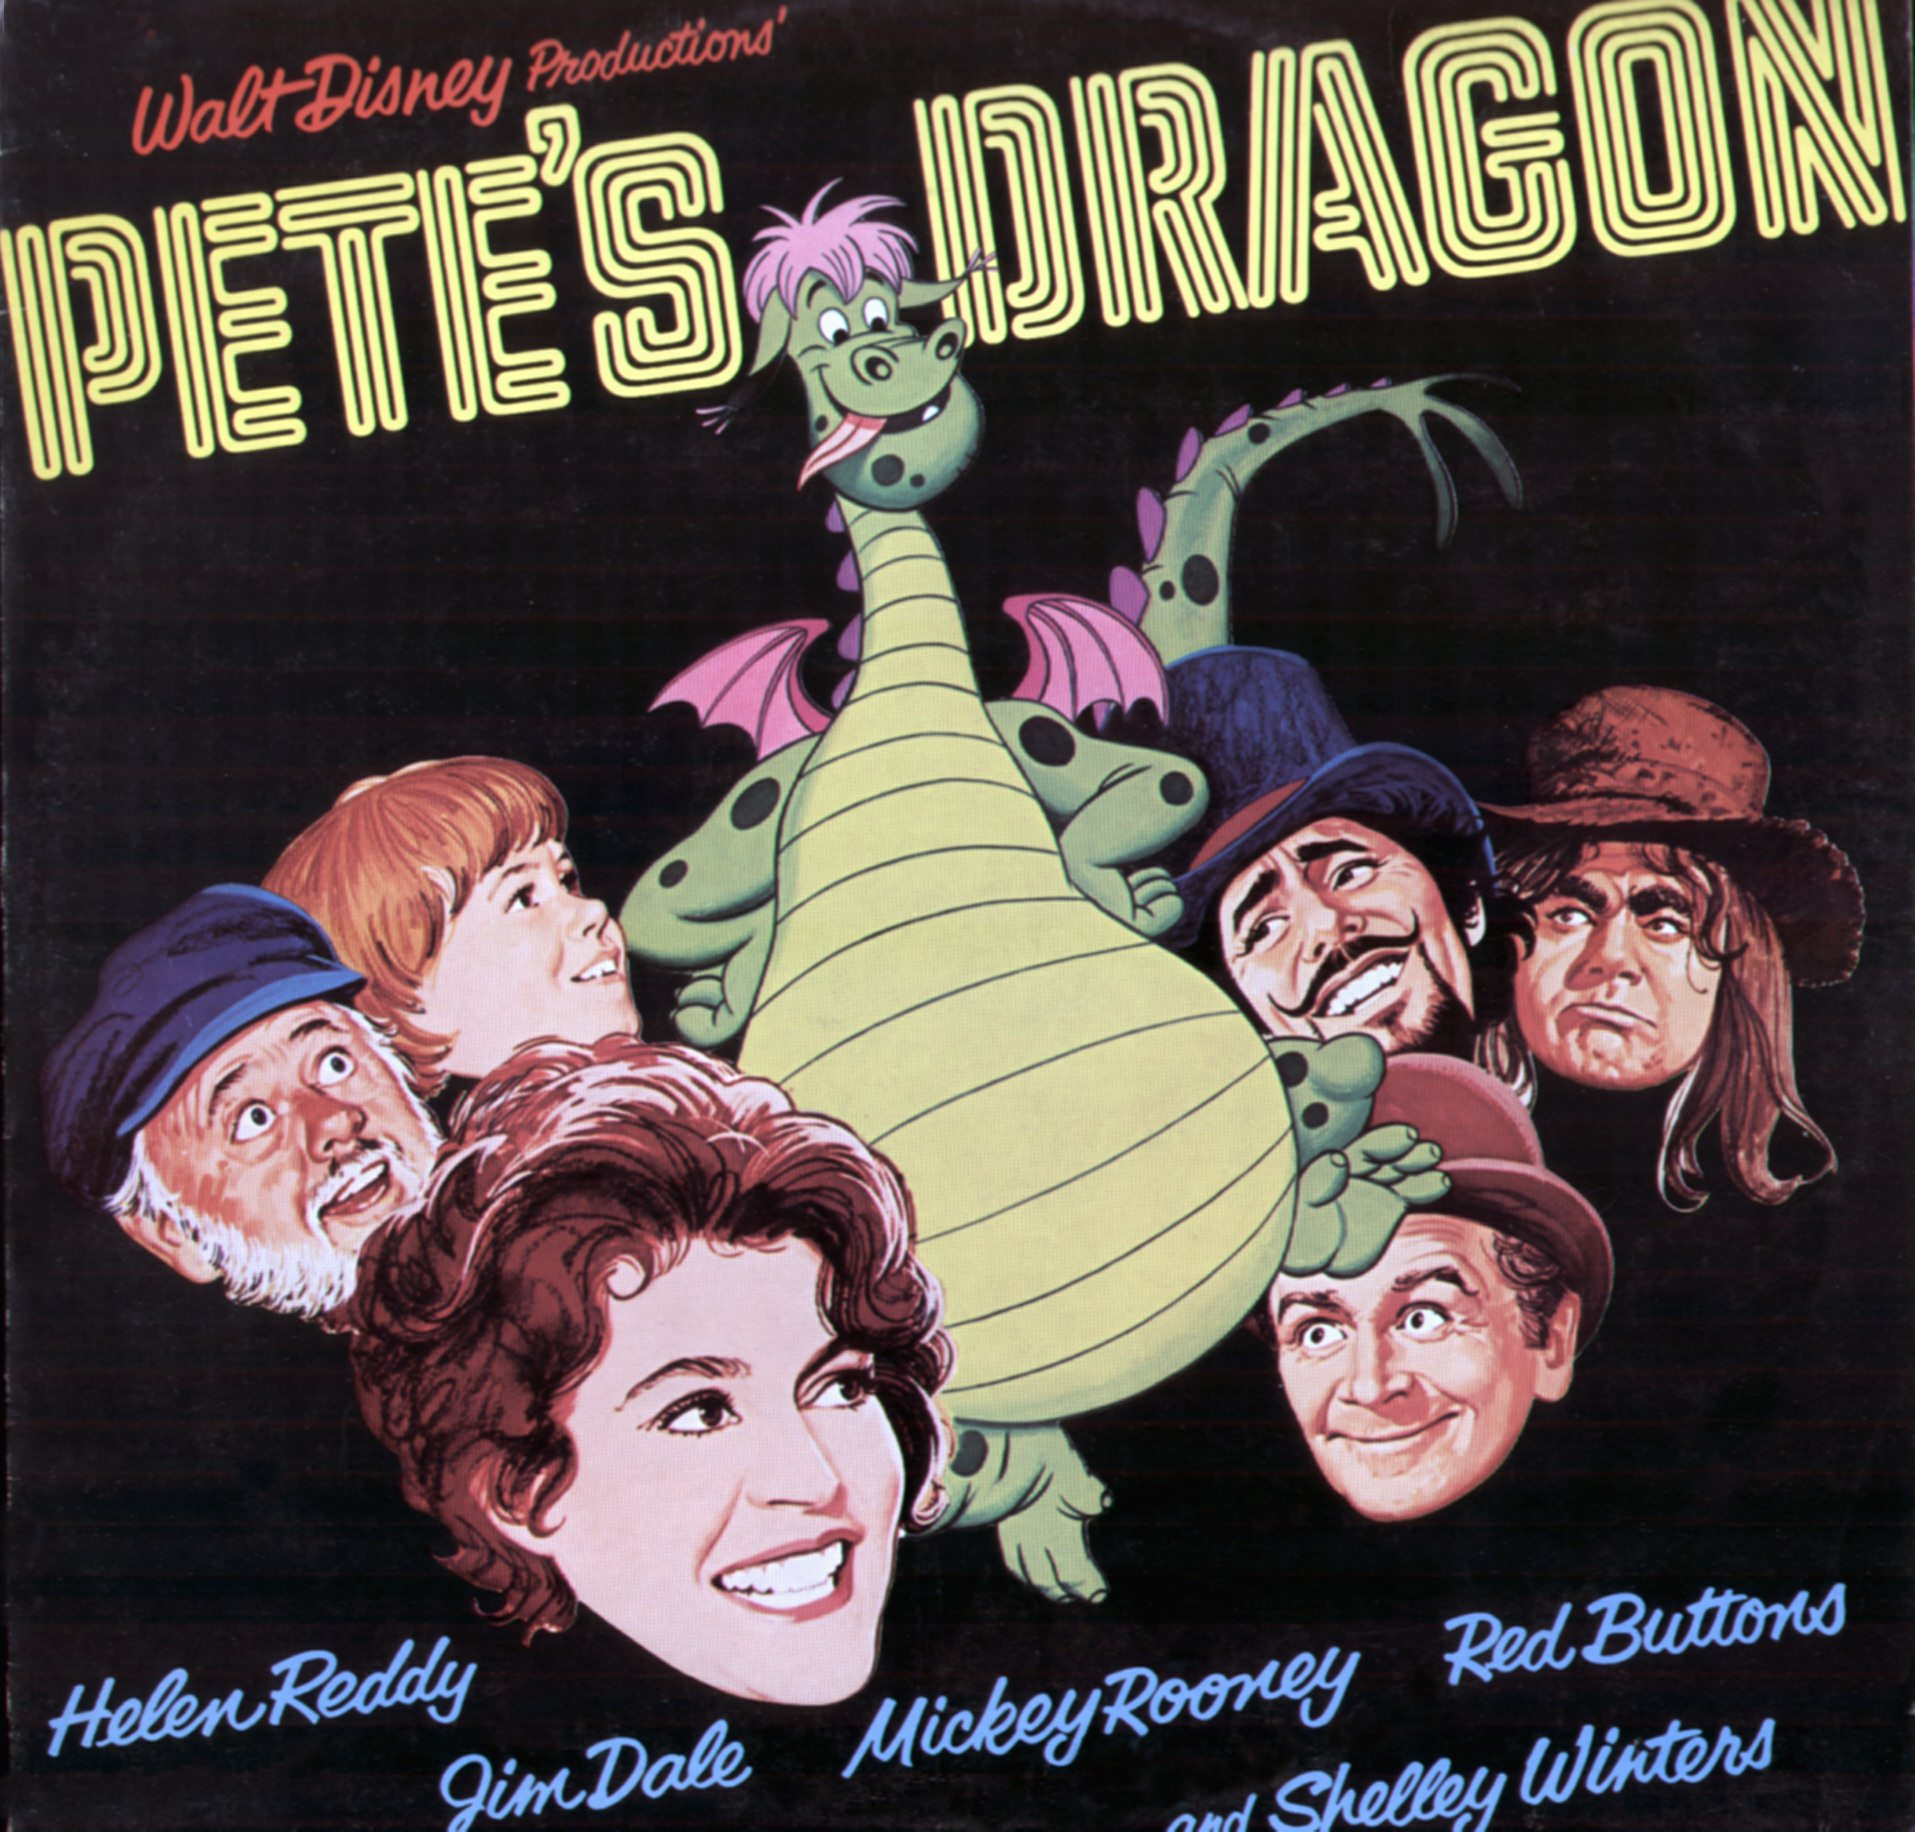 A photo of the 1977 'Pete's Dragon' film poster